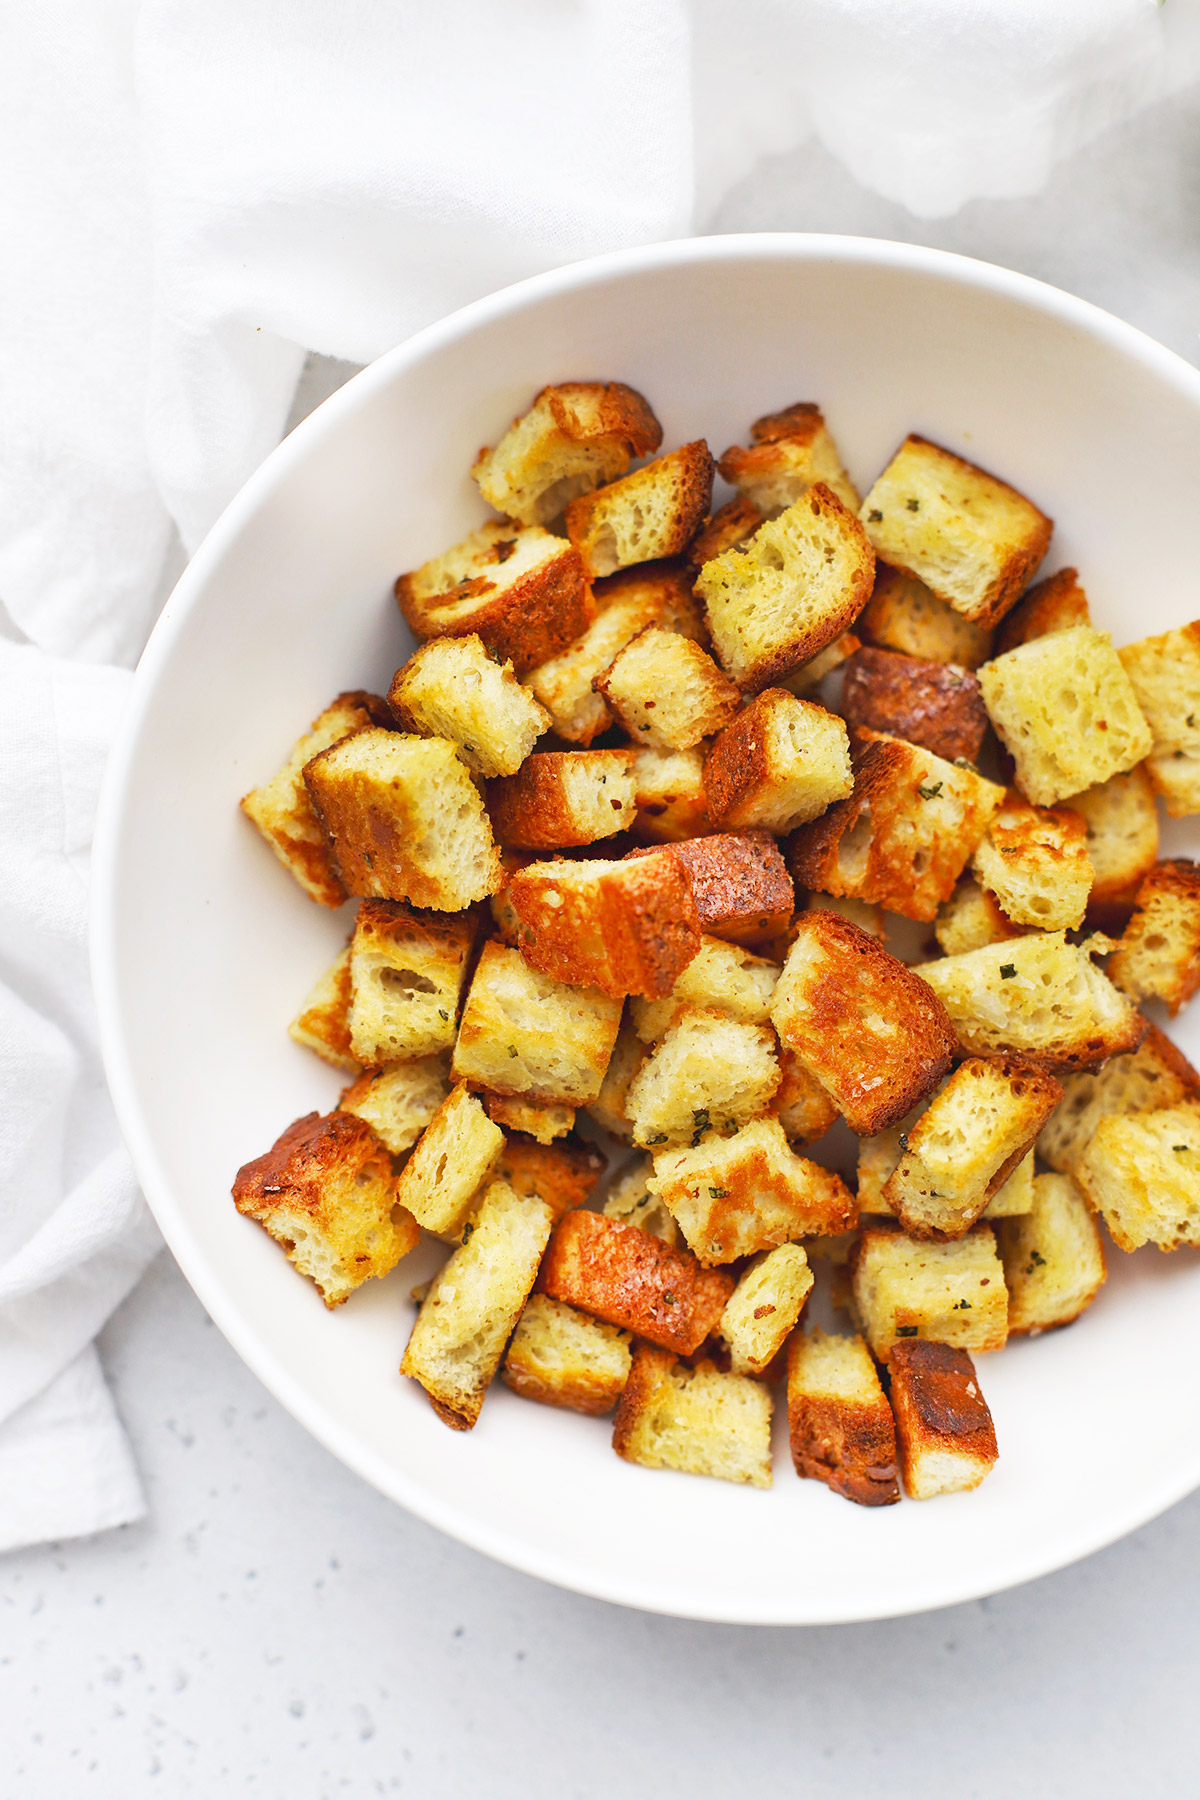 Close up view of gluten-free croutons in a white bowl